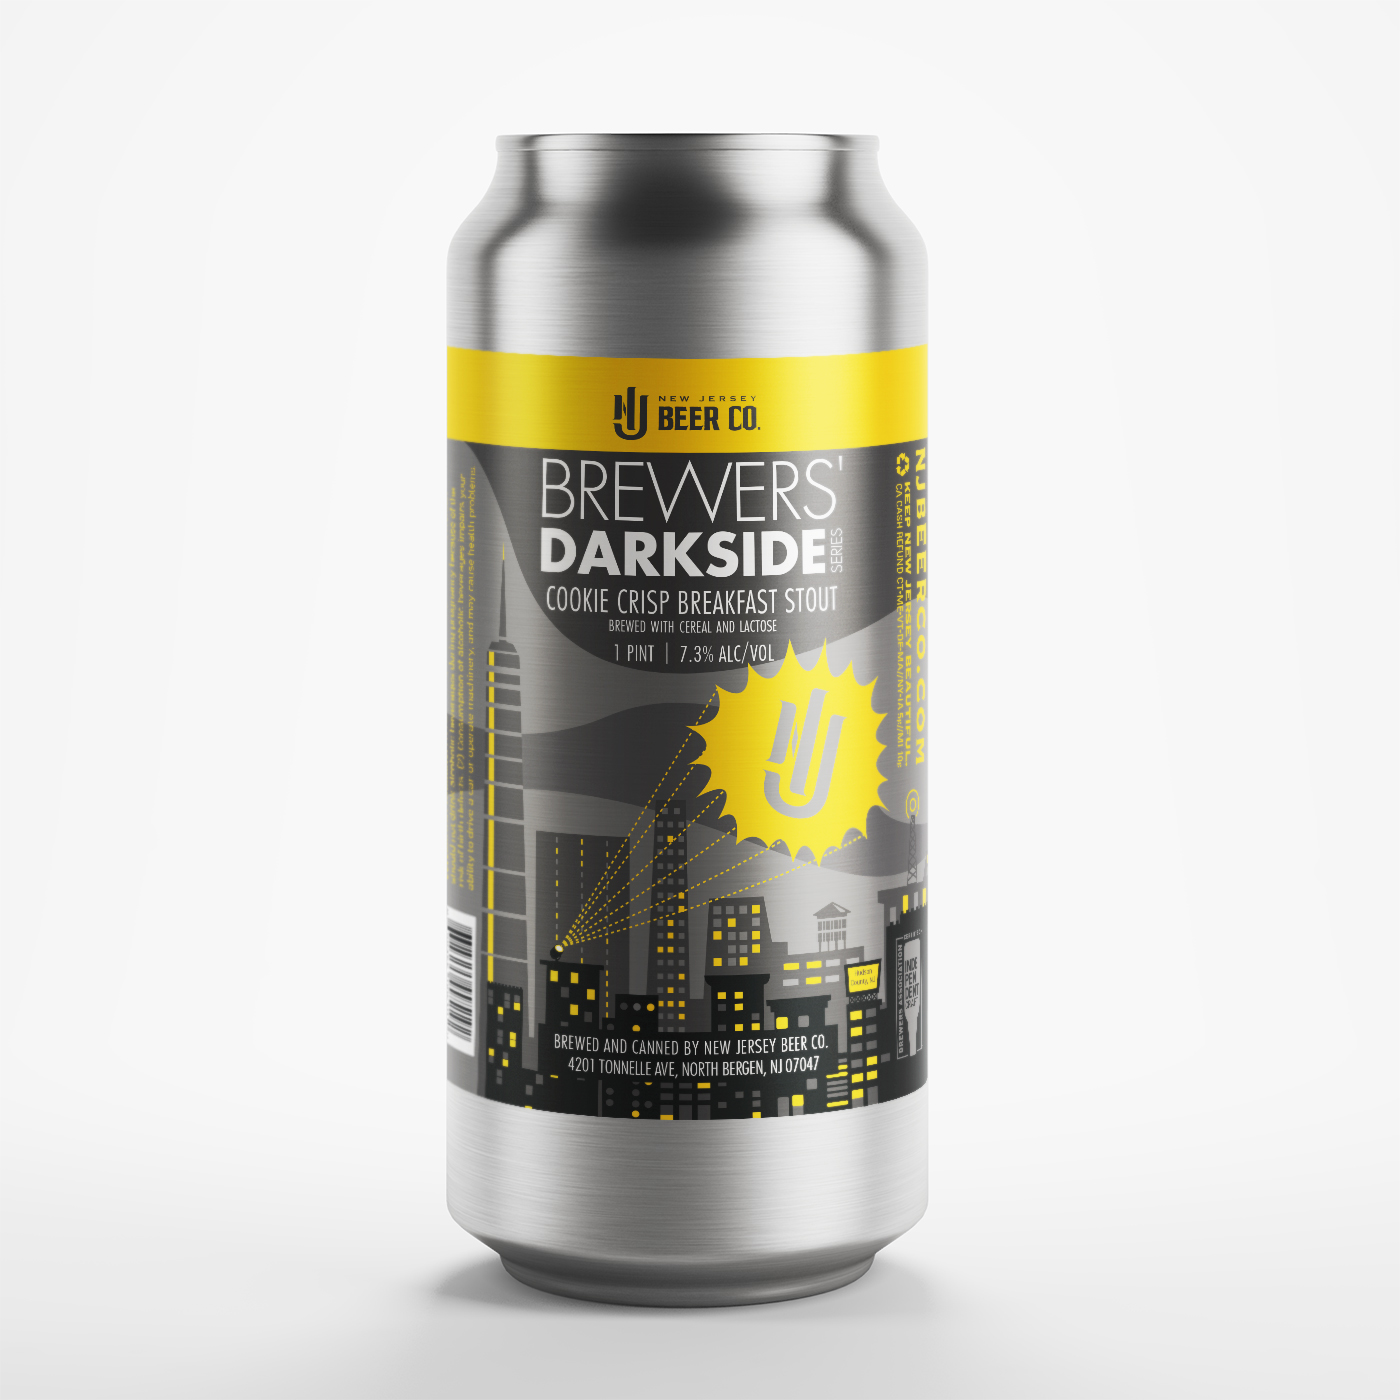 Image result for new jersey BEER CO. DARKSIDE cookie crisp breakfast stout LABEL